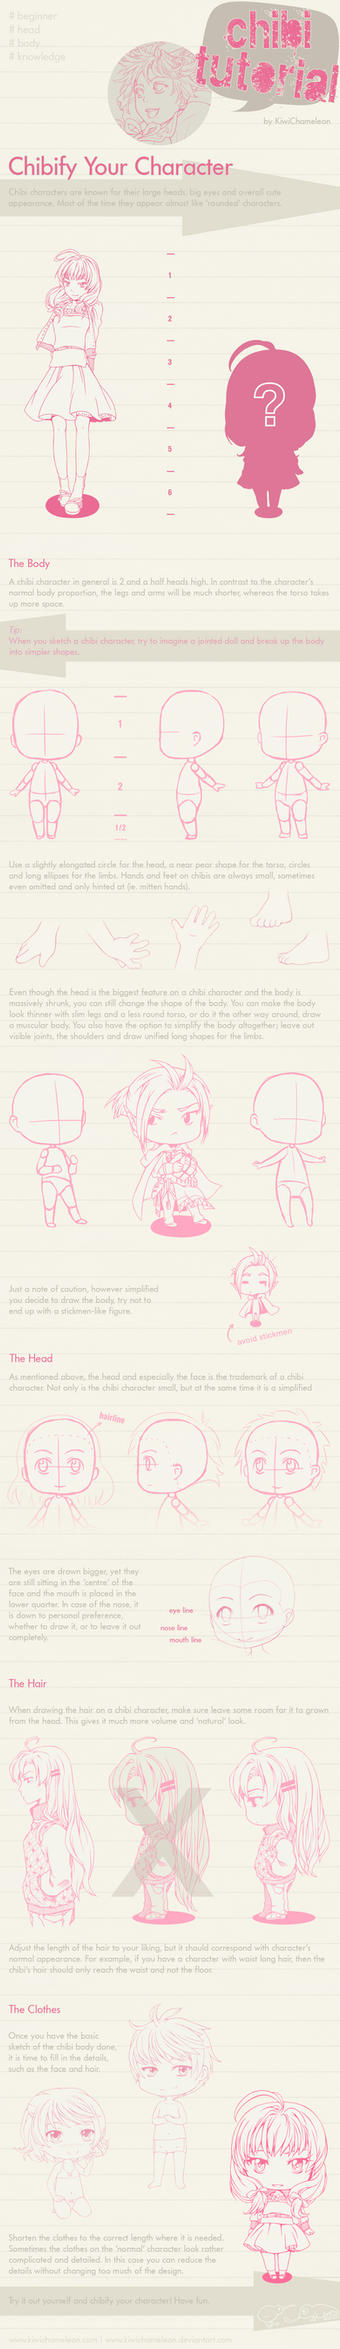 Chibify Your Character - Tutorial by KiwiChameleon